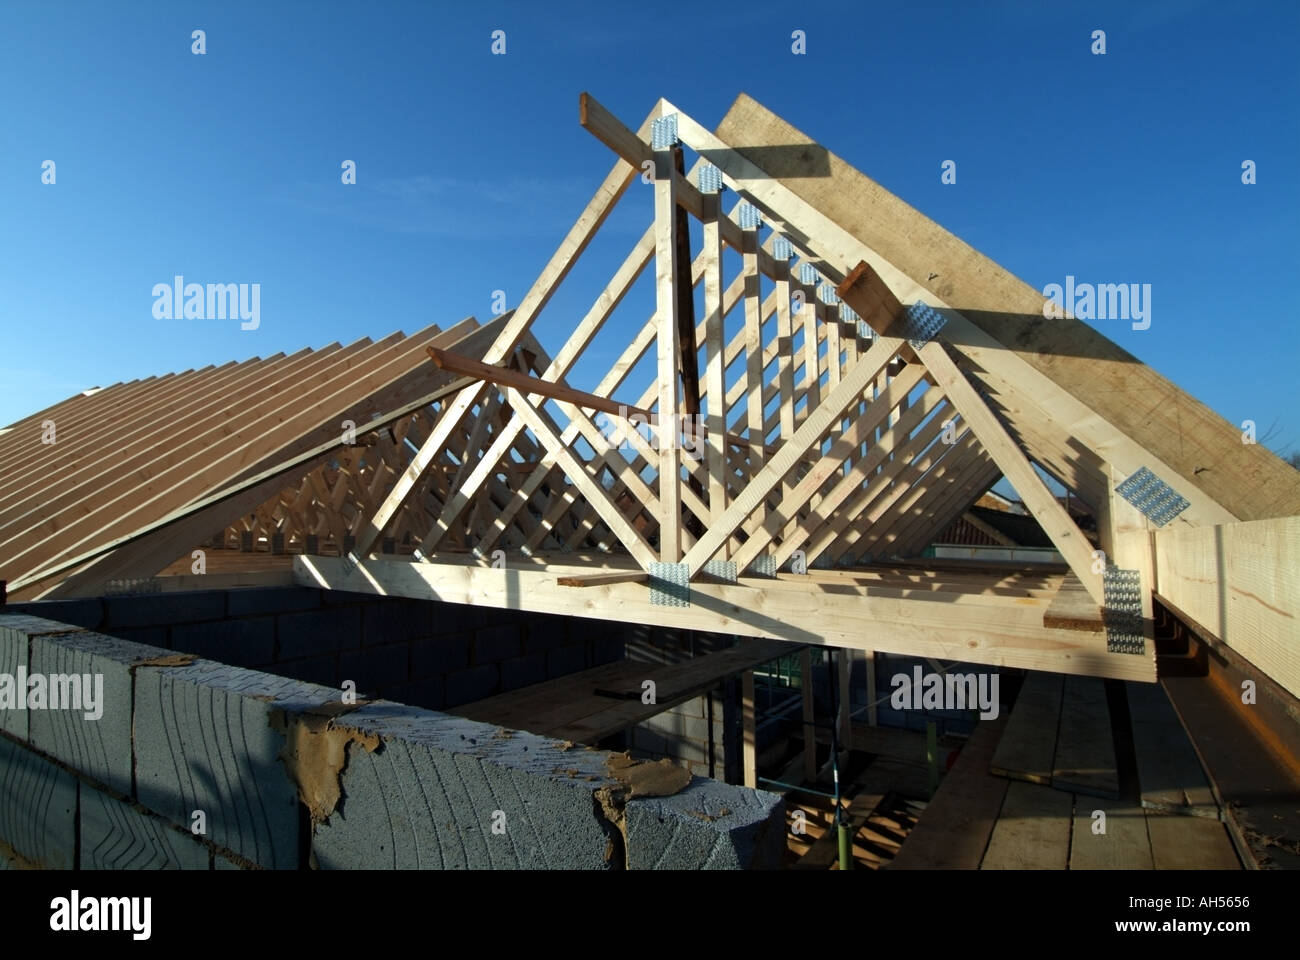 Detached house work in progress fixing prefabricated roof for Prefabricated roof